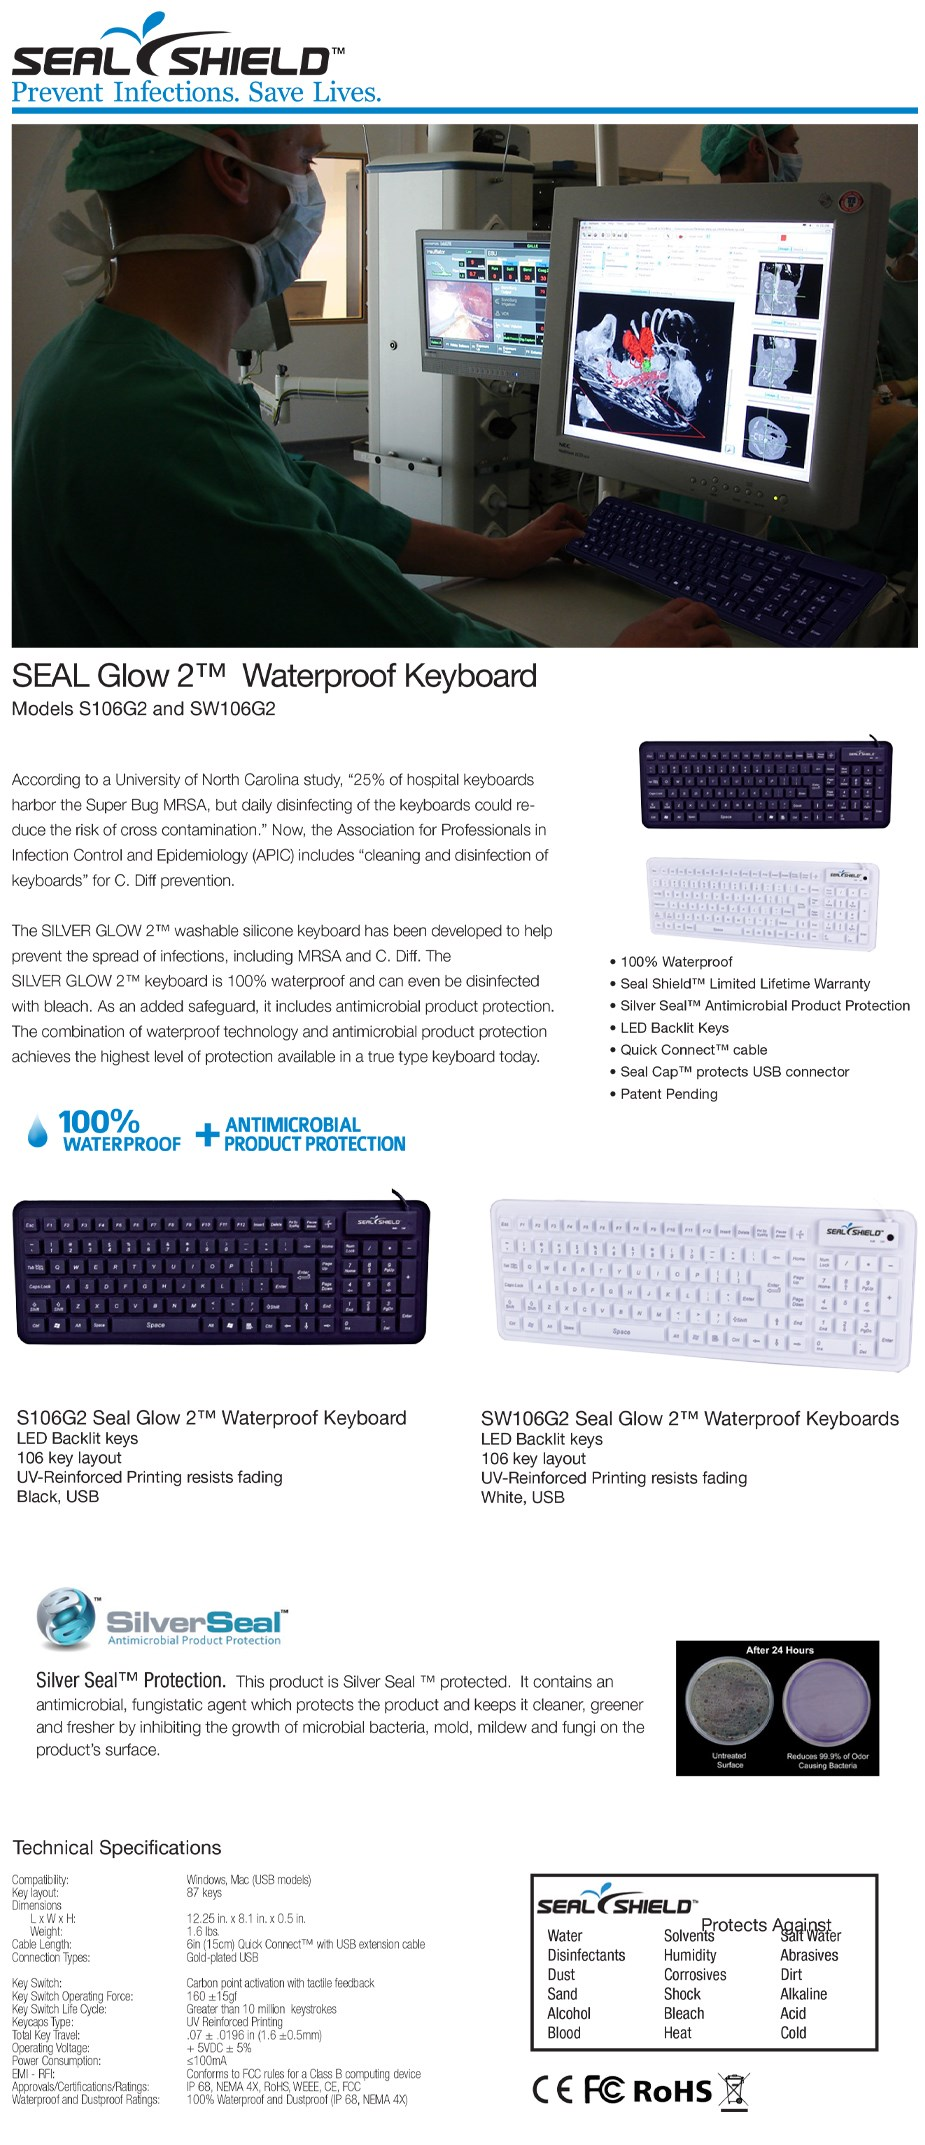 Seal Shield Glow 2 Waterproof Keyboard - Black - Overview